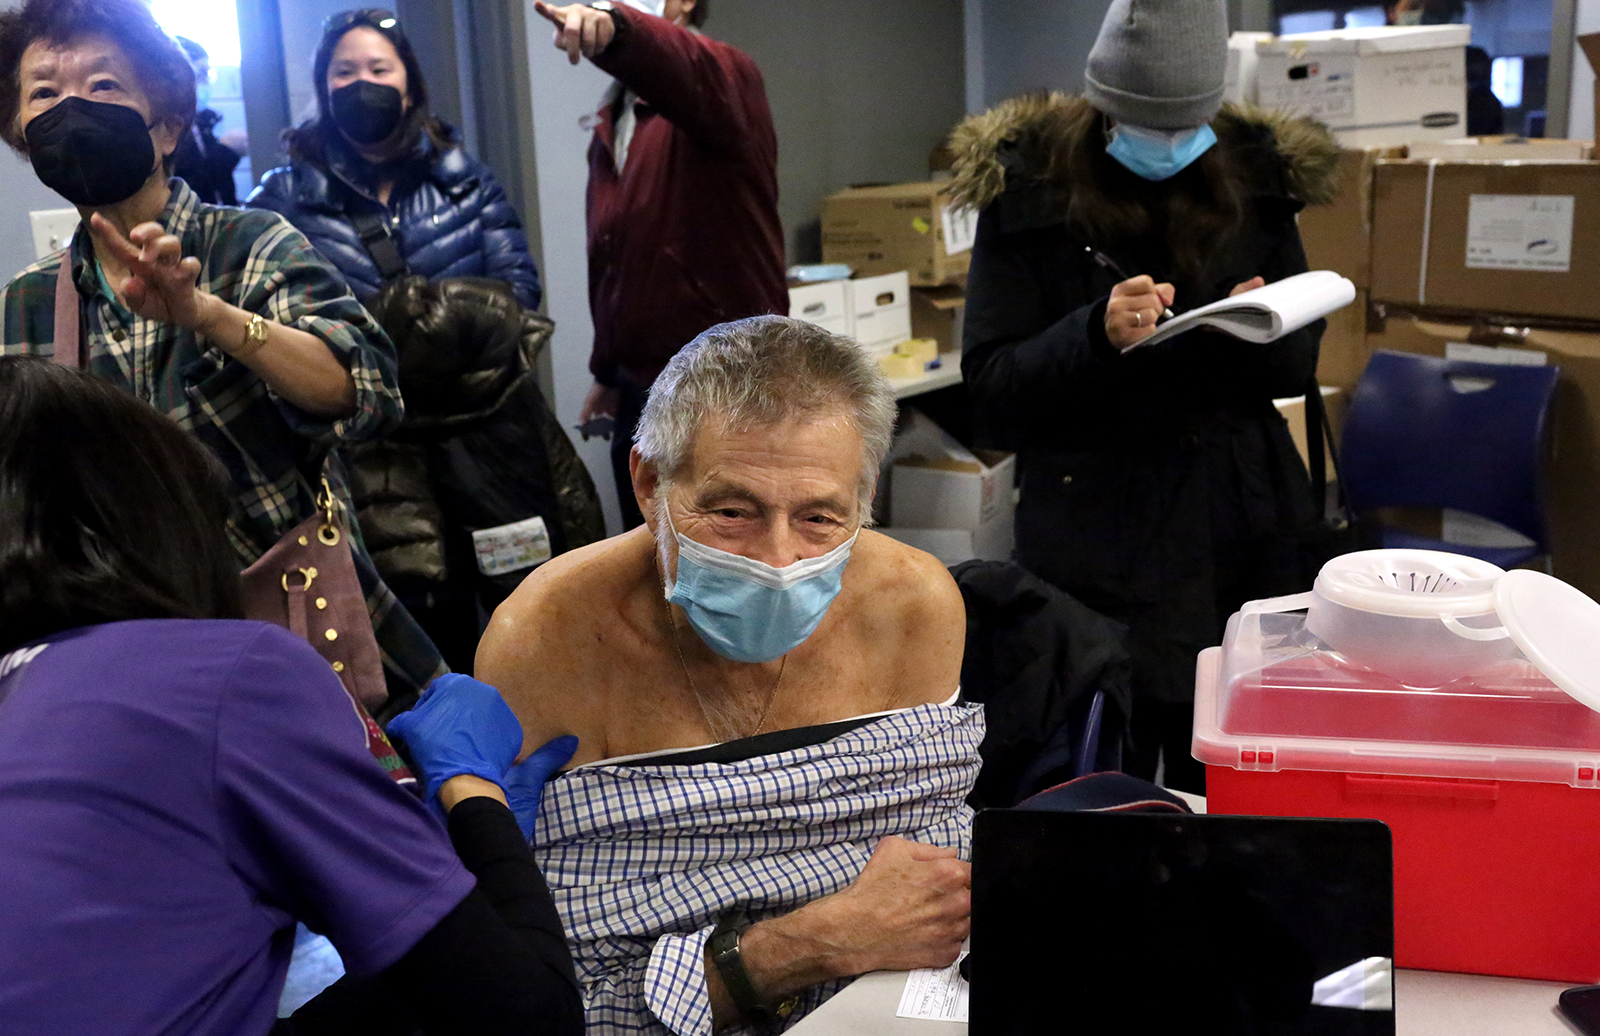 Ezras Nashim founder Rachel Freier administers a second dose of the Moderna Covid-19 vaccine to Jehuda Lindenblatt, an 83-year-old Holocaust survivor and an EMT at the competing all-male Hatzolah EMT organization, at Midwood Ambulance in Brooklyn, NY on January 24, 2021. (Photo by: Yana Paskova for The New York Times/the National Geographic Society)